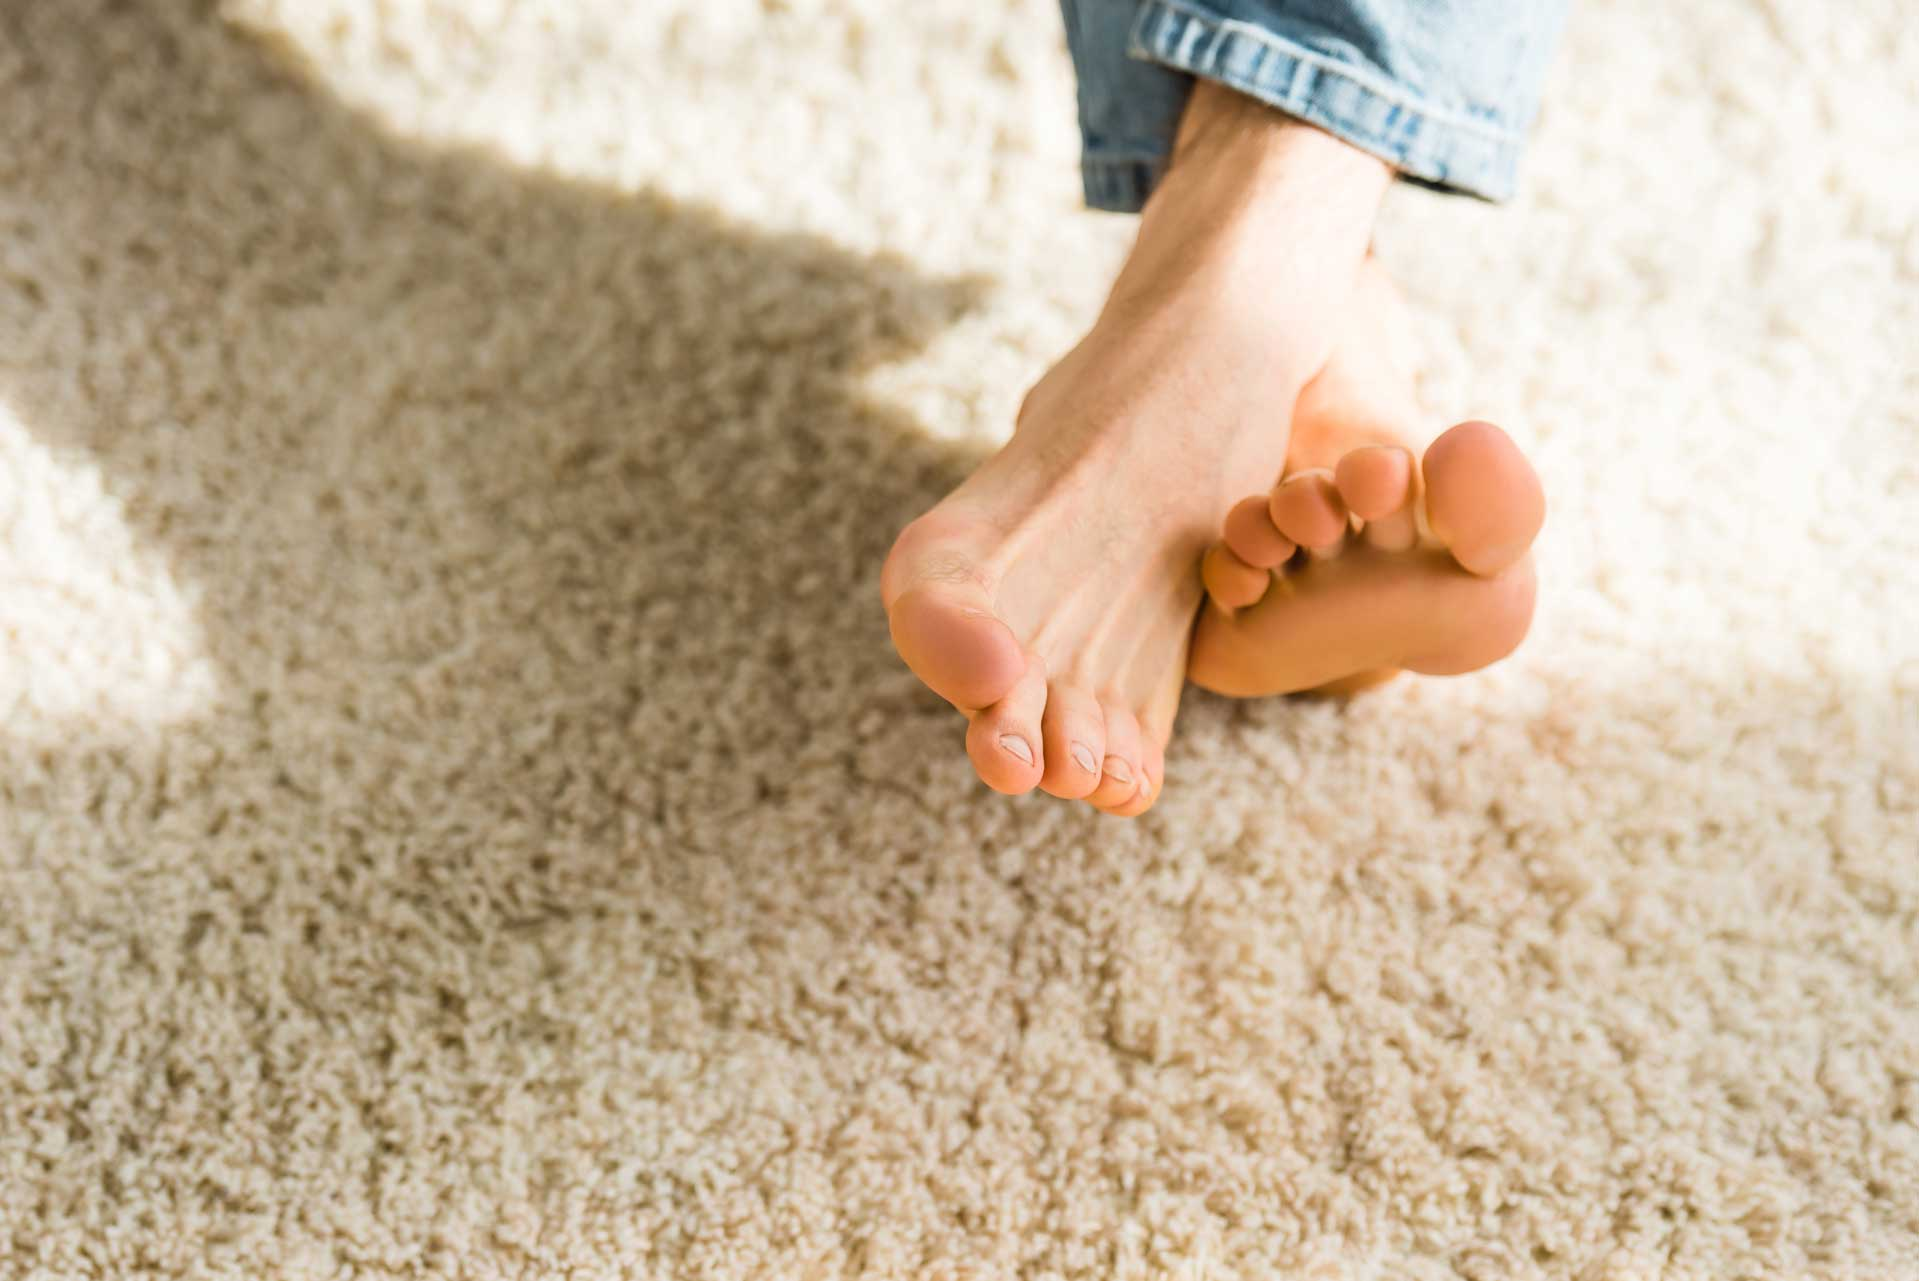 Image of bare feet on clean carpet free of water stains